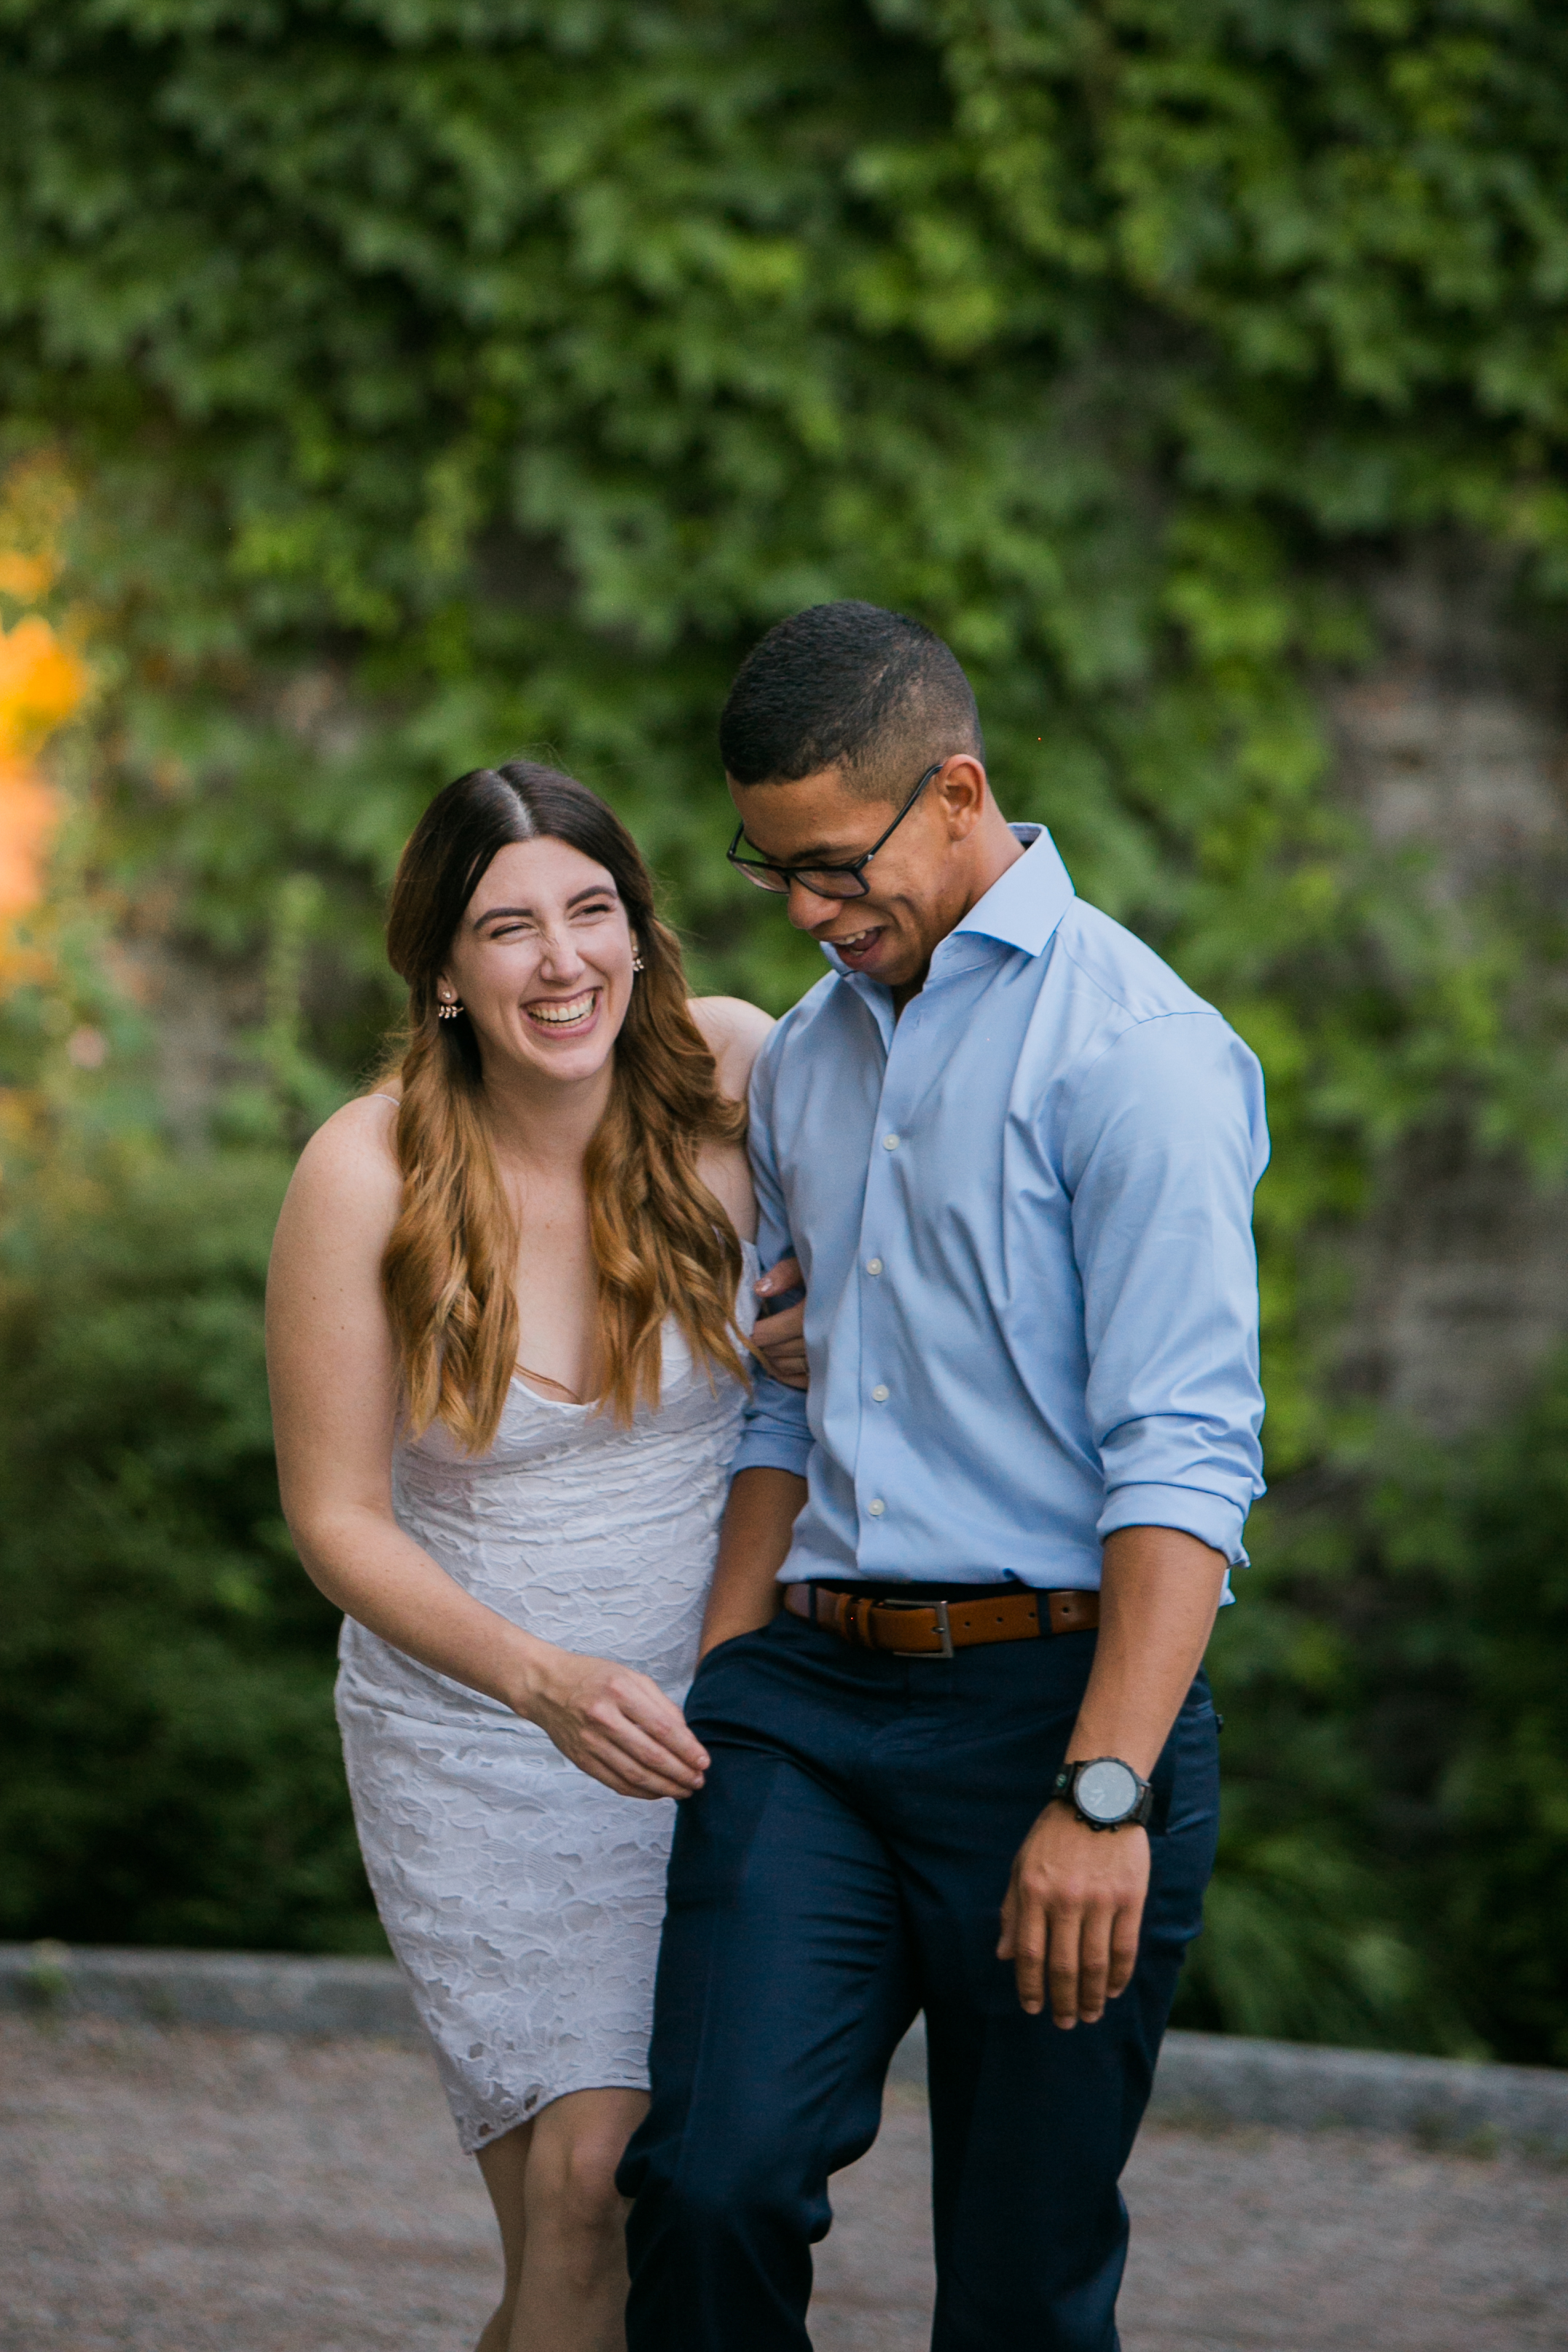 Vieux Old quebec engagement photos at sunset by Ness Photography.11.jpg